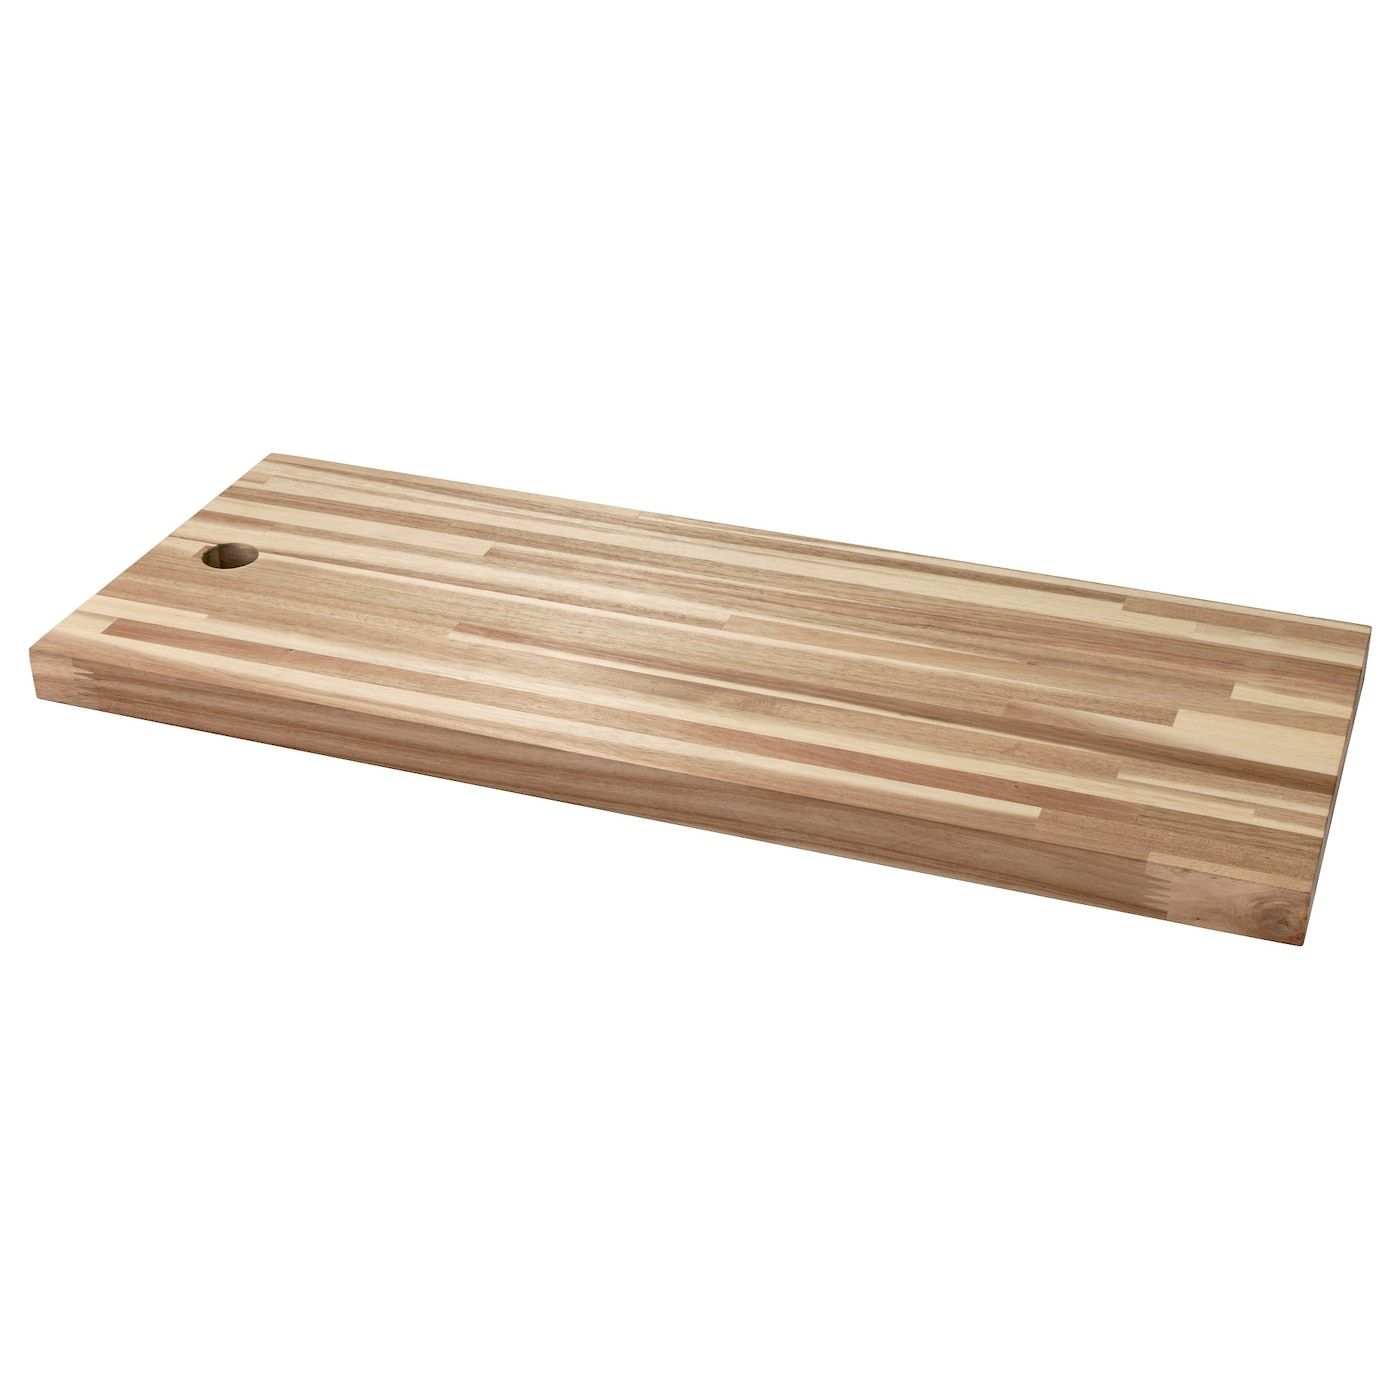 skogsta chopping board acacia 64x25 cm ikea. Black Bedroom Furniture Sets. Home Design Ideas